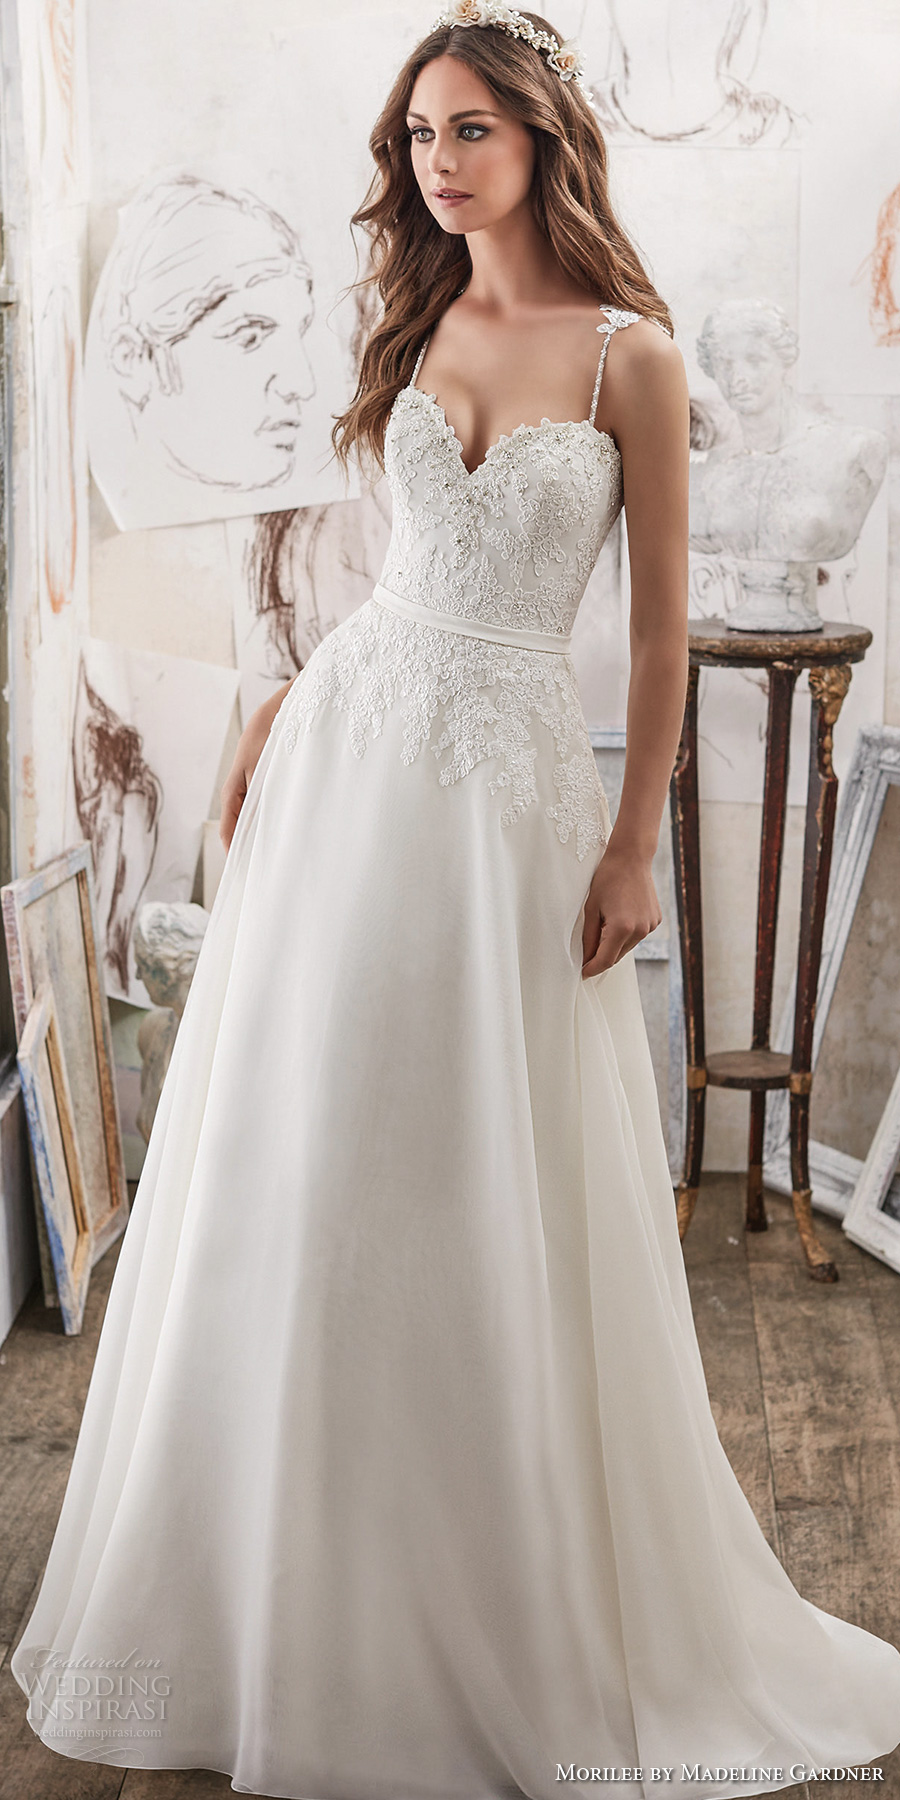 Discount Mori Lee Wedding Dresses